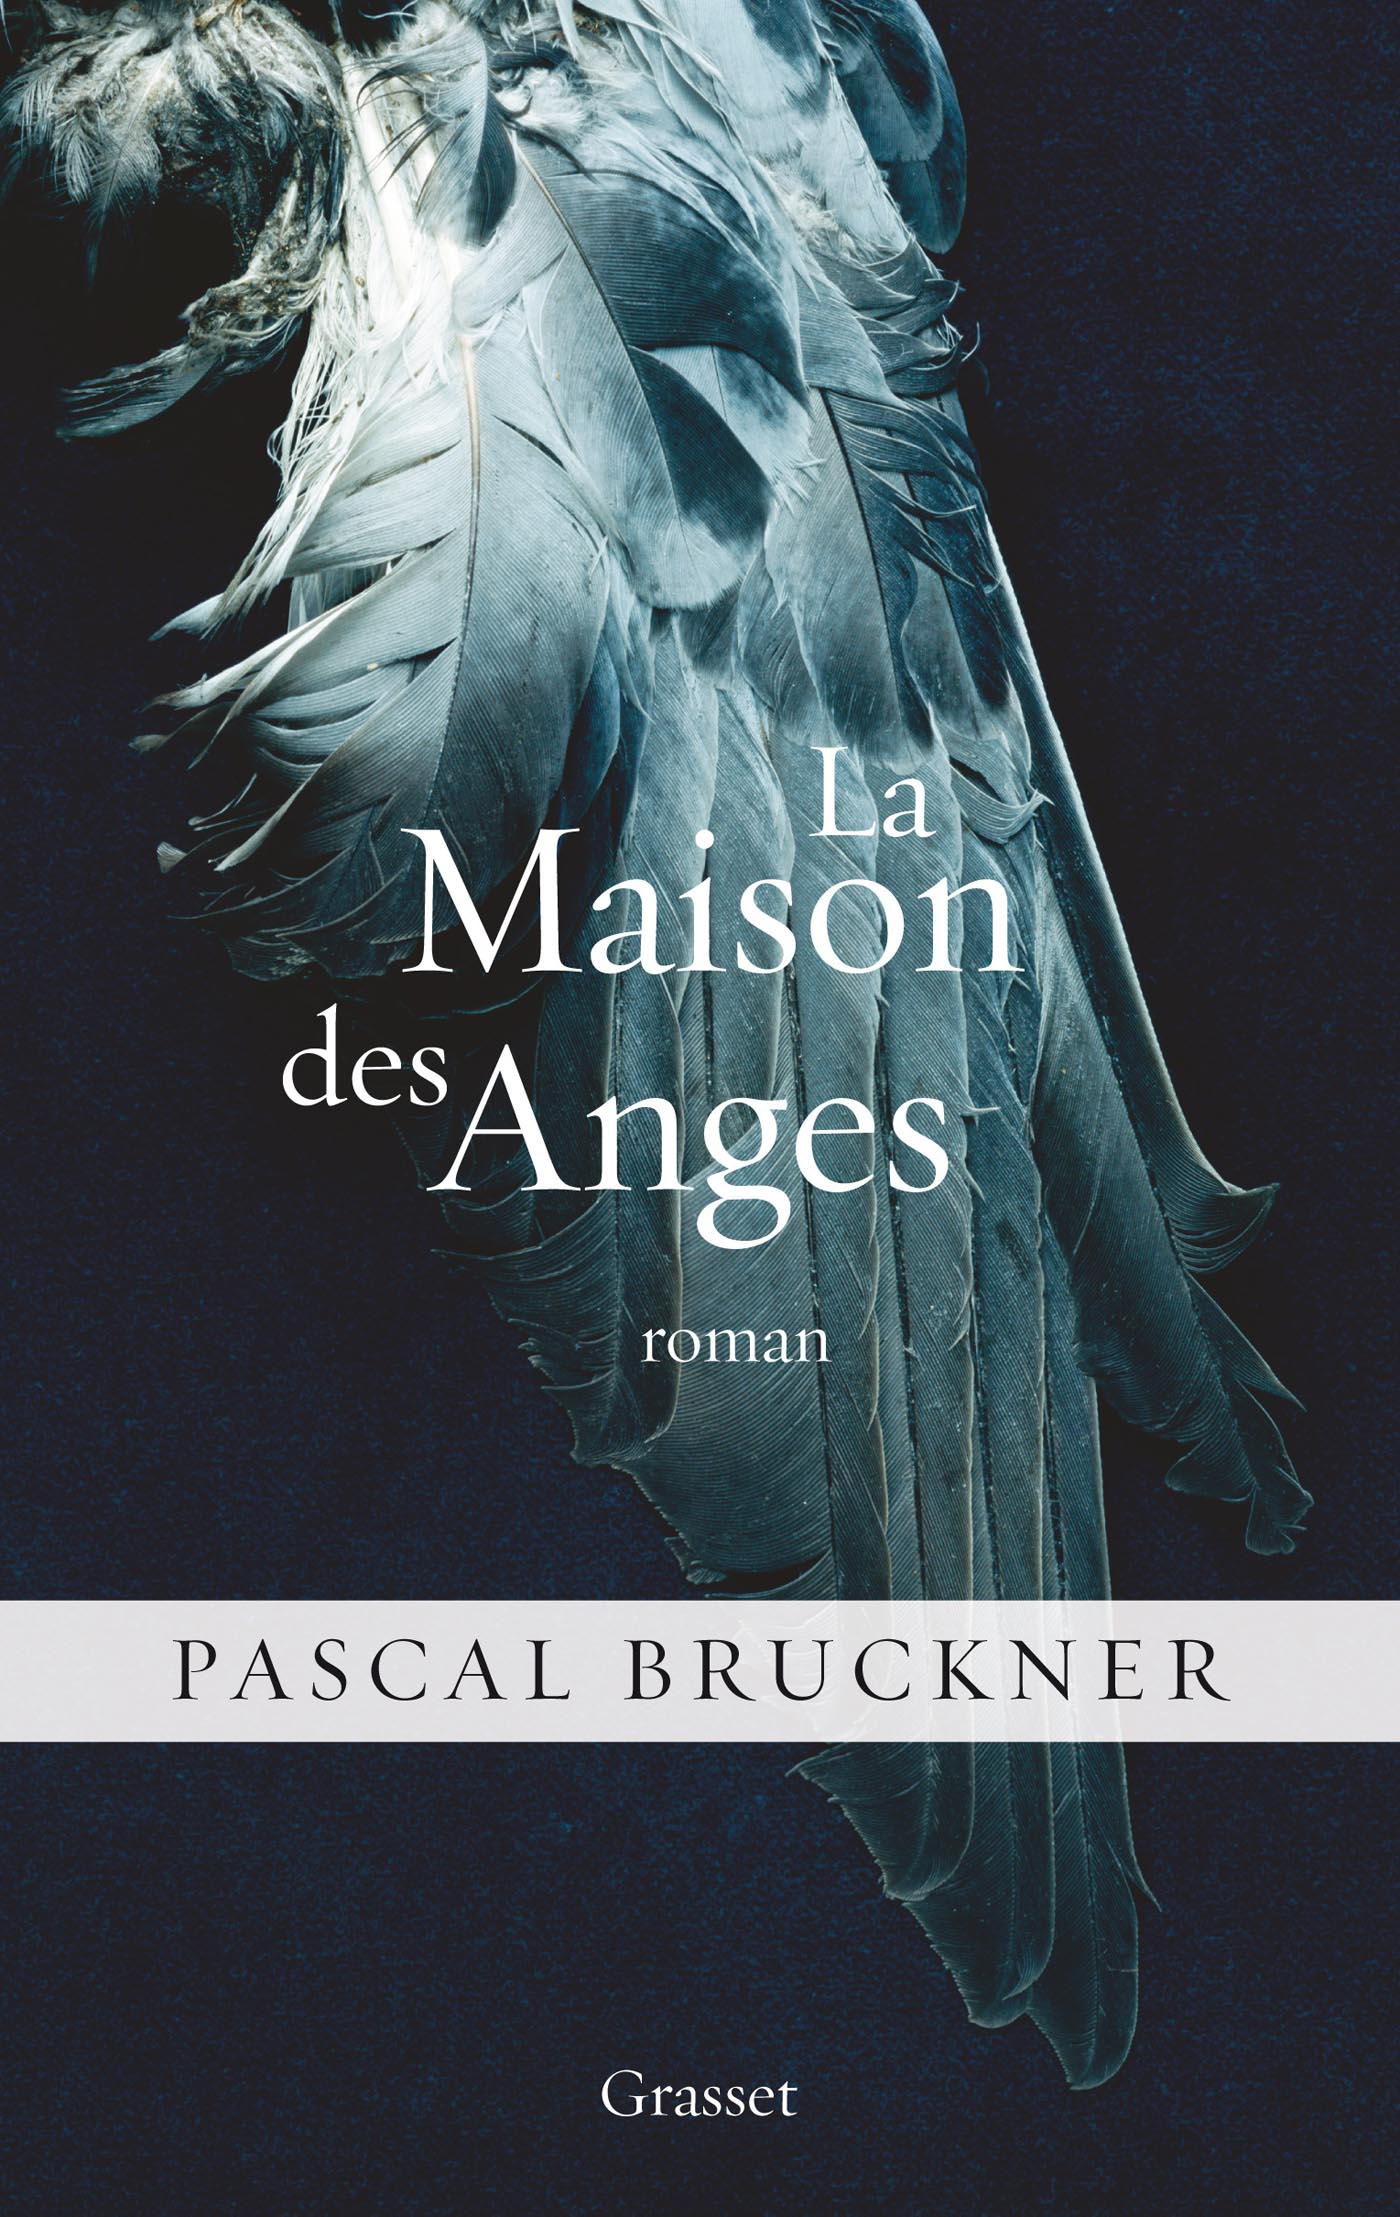 pascal bruckner crivain et essayiste Pascal bruckner's wiki: pascal bruckner (french: [bʁyknɛʁ] born 15 december 1948 in paris) is a french writer, one of the new philosophers who came to prominence in the 1970s and 1980s.